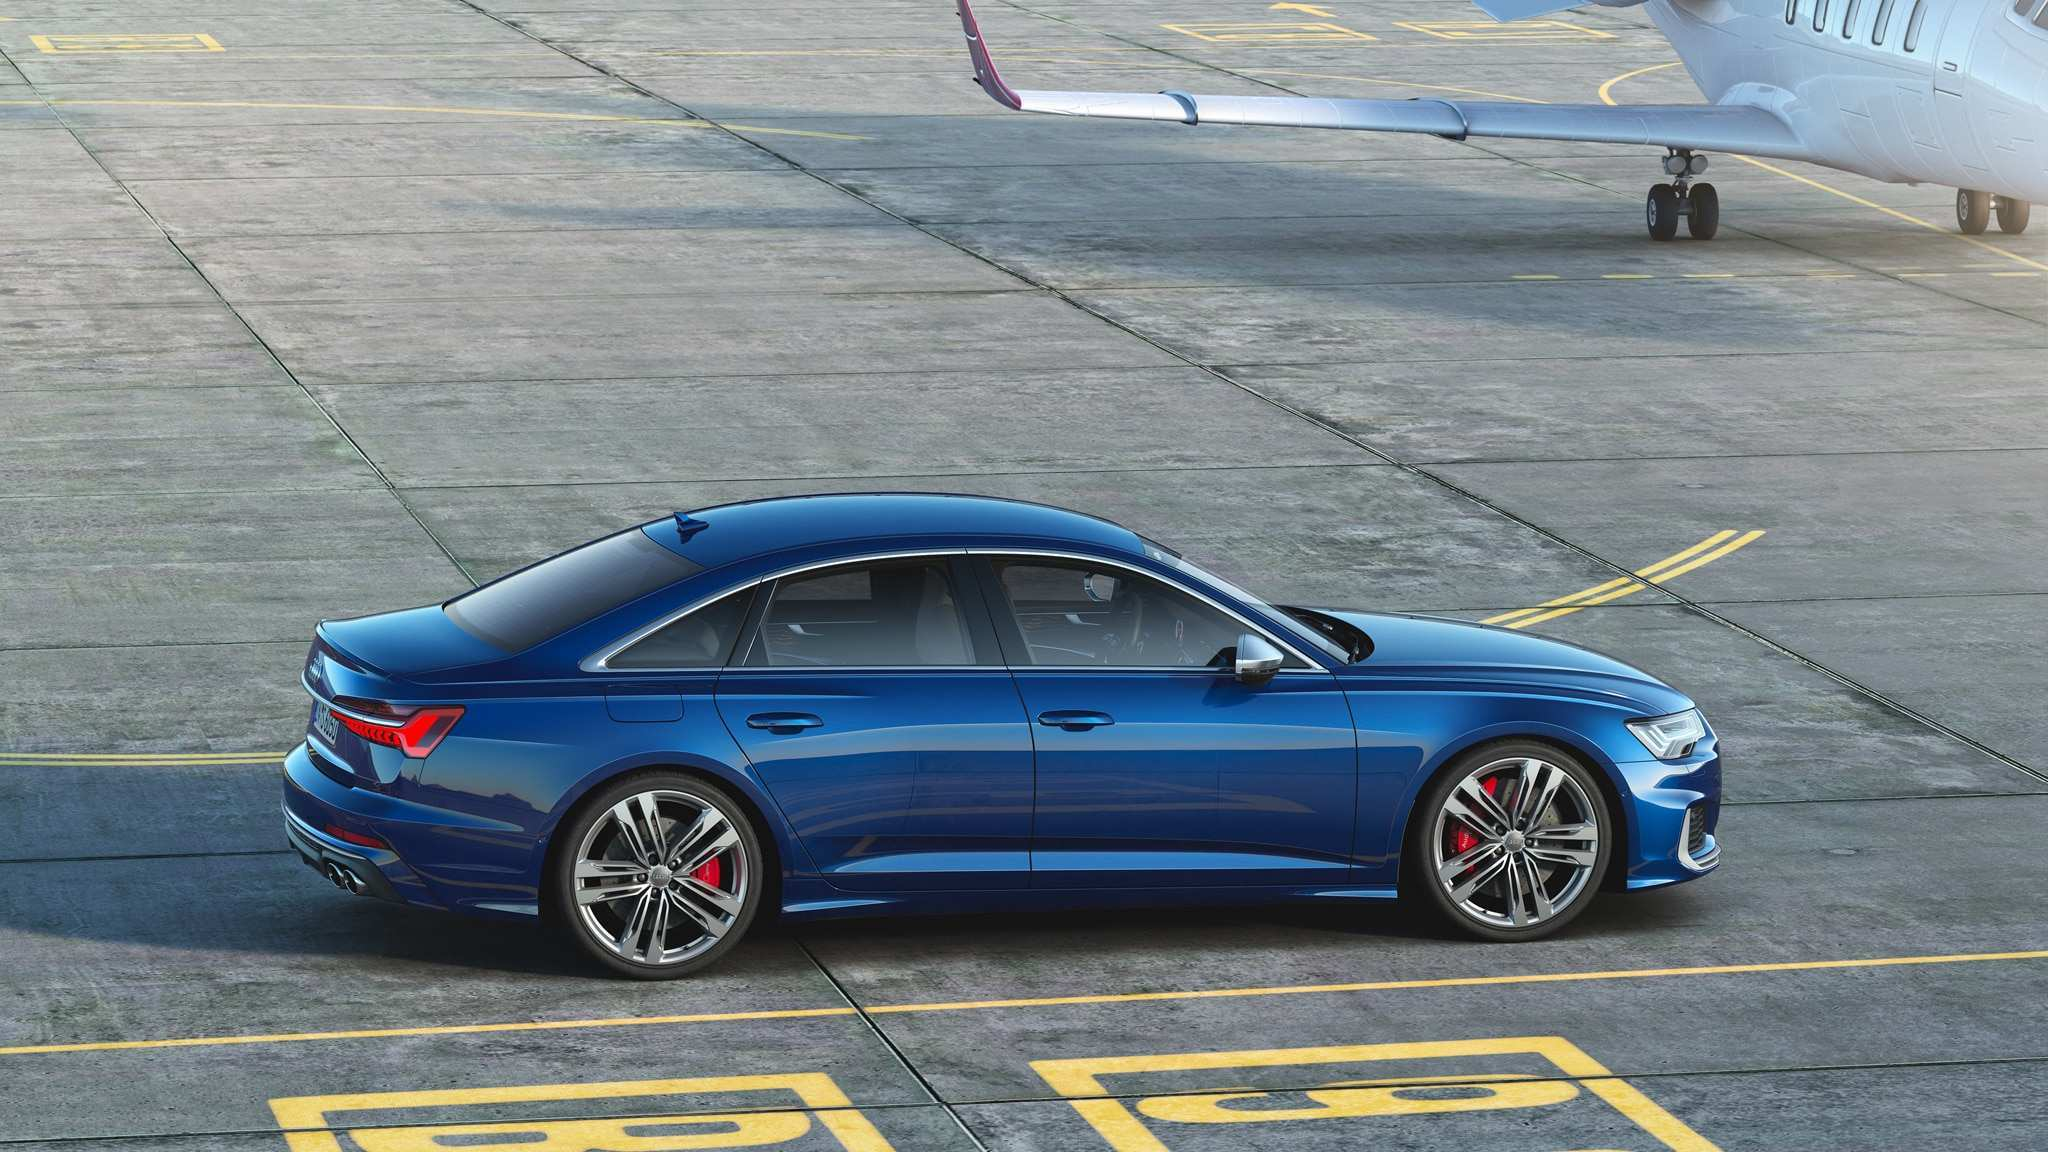 99 All New 2020 Audi S6 Review And Release Date